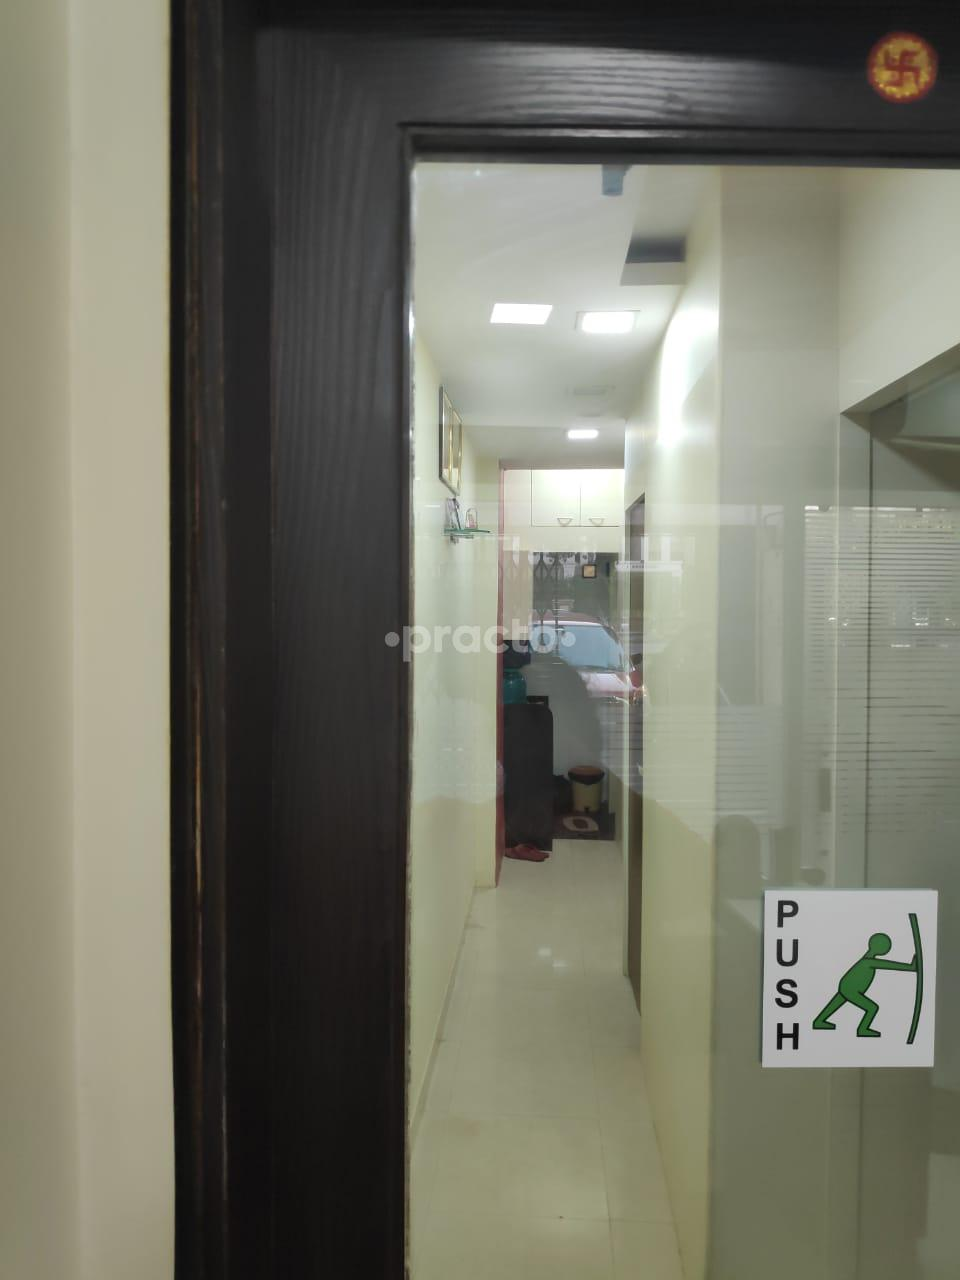 Urologists In Mumbai - Instant Appointment Booking, View Fees